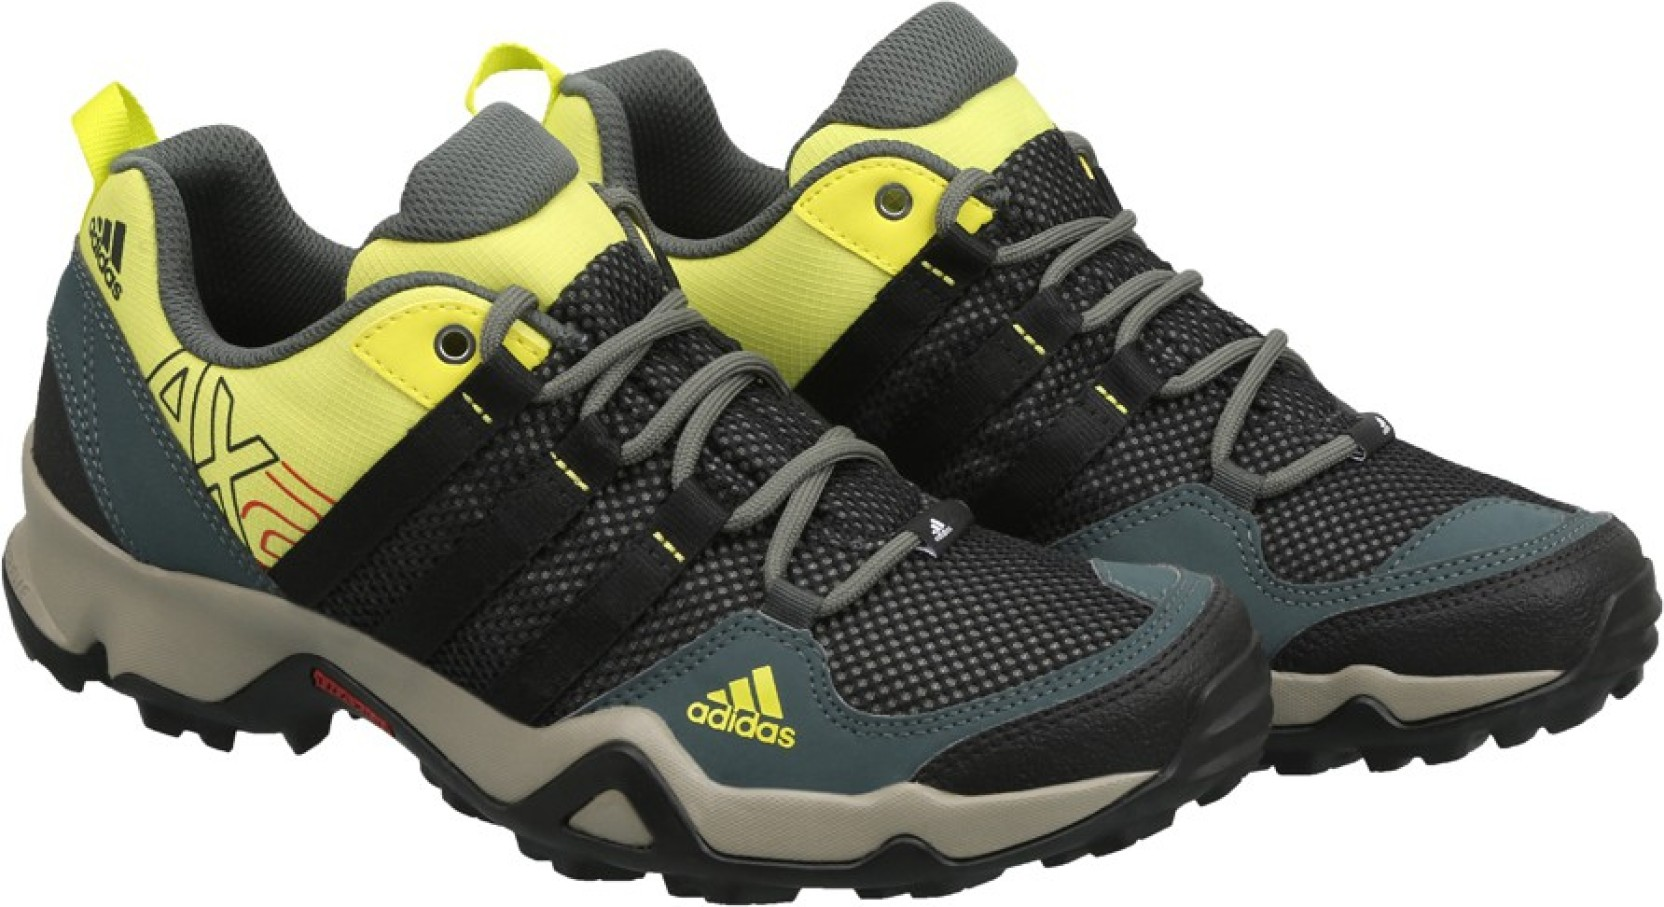 Adidas AX2 Outdoor Shoes - Buy Vtiivy/c. Black/shosli Color Adidas AX2 Outdoor Shoes Online At ...